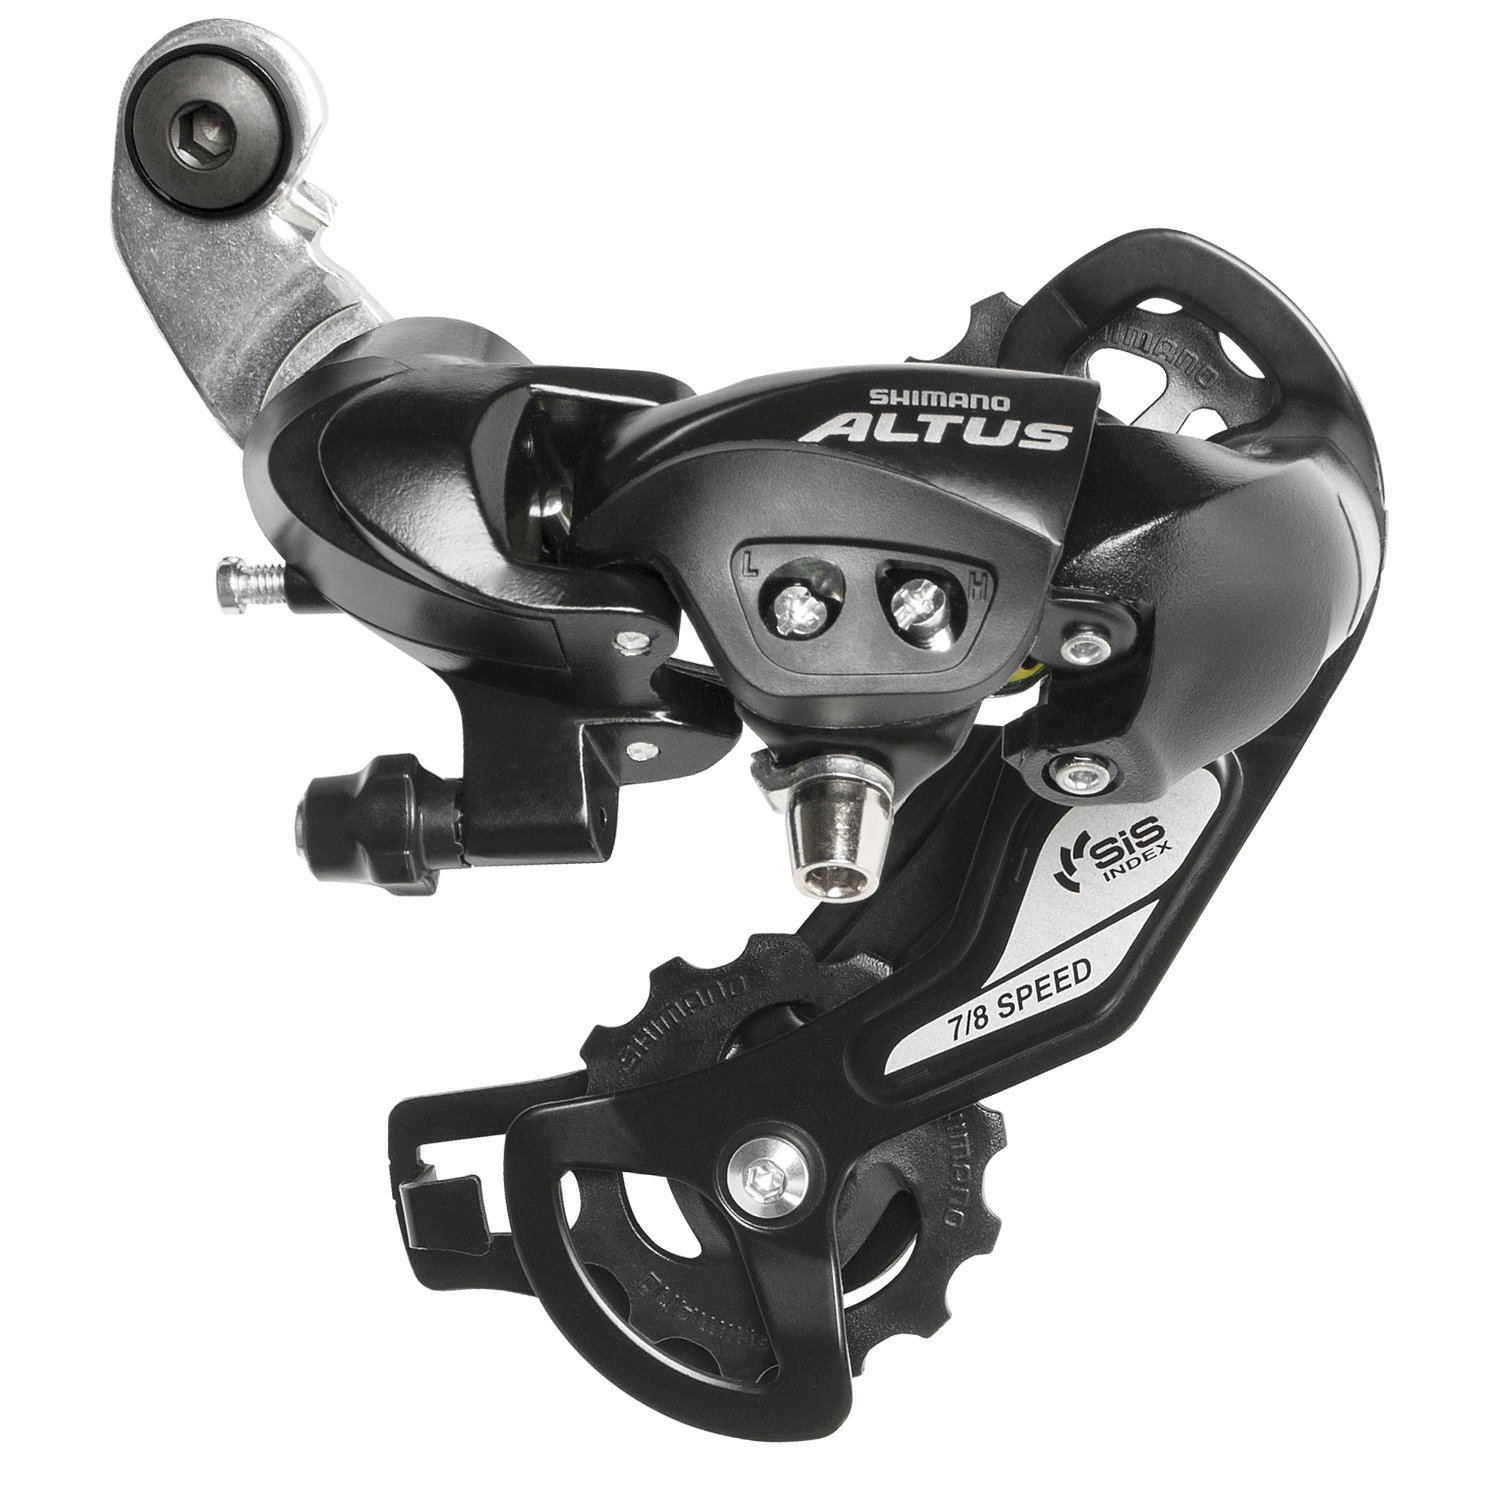 Shimano Mountain Bike 7/8 Speed RD-M280 Rear Derailleur Top-bike